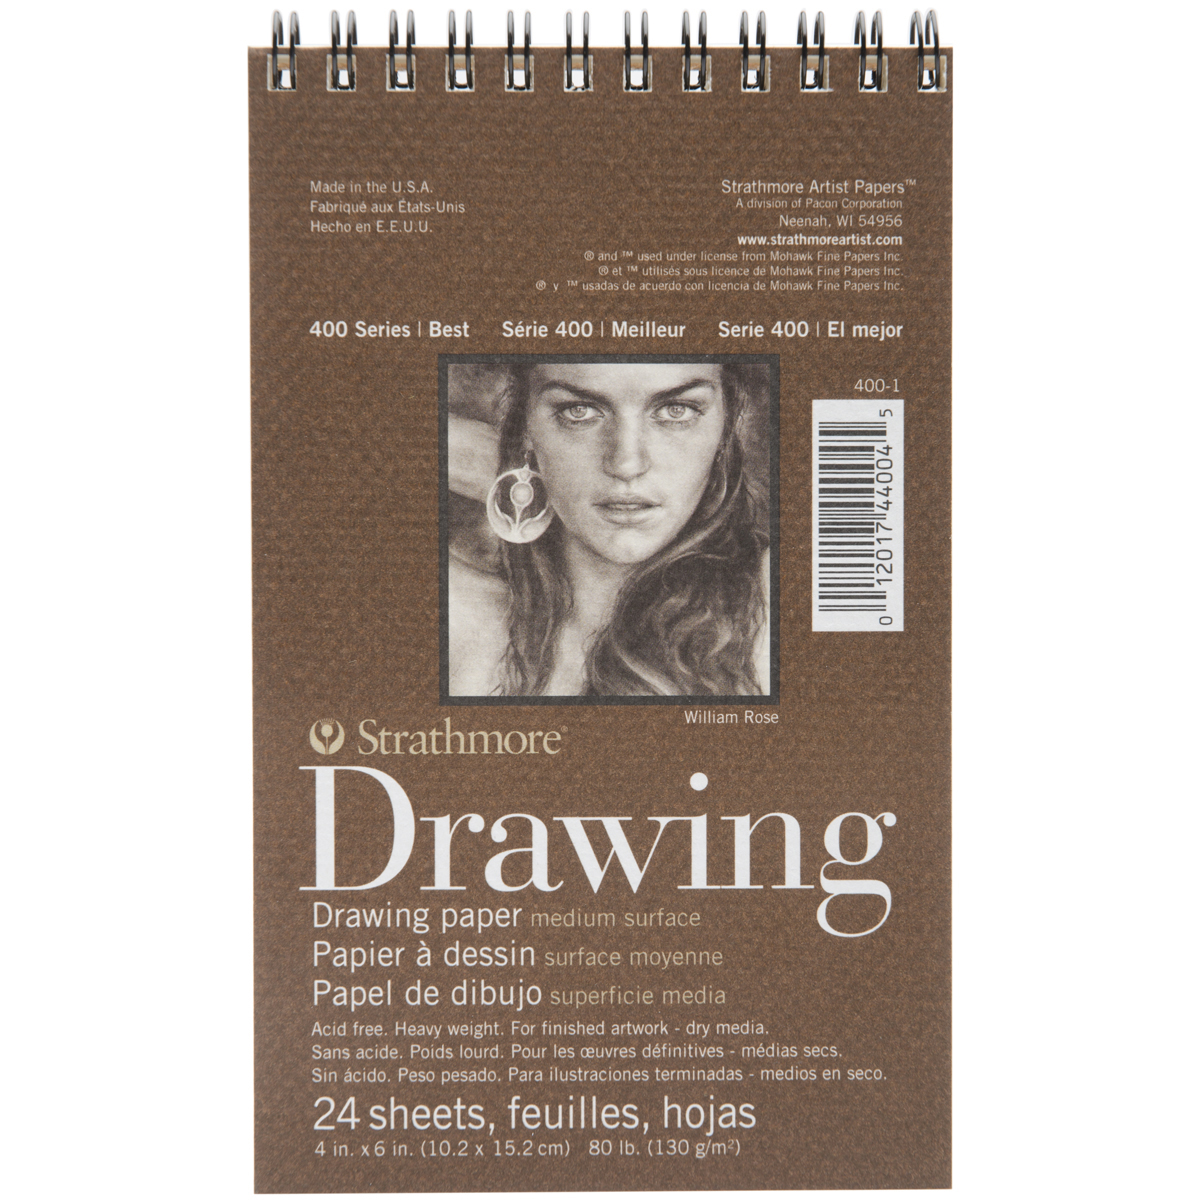 "Strathmore Drawing Medium Paper Pad, 4"" x 6"", 24 Sheets"